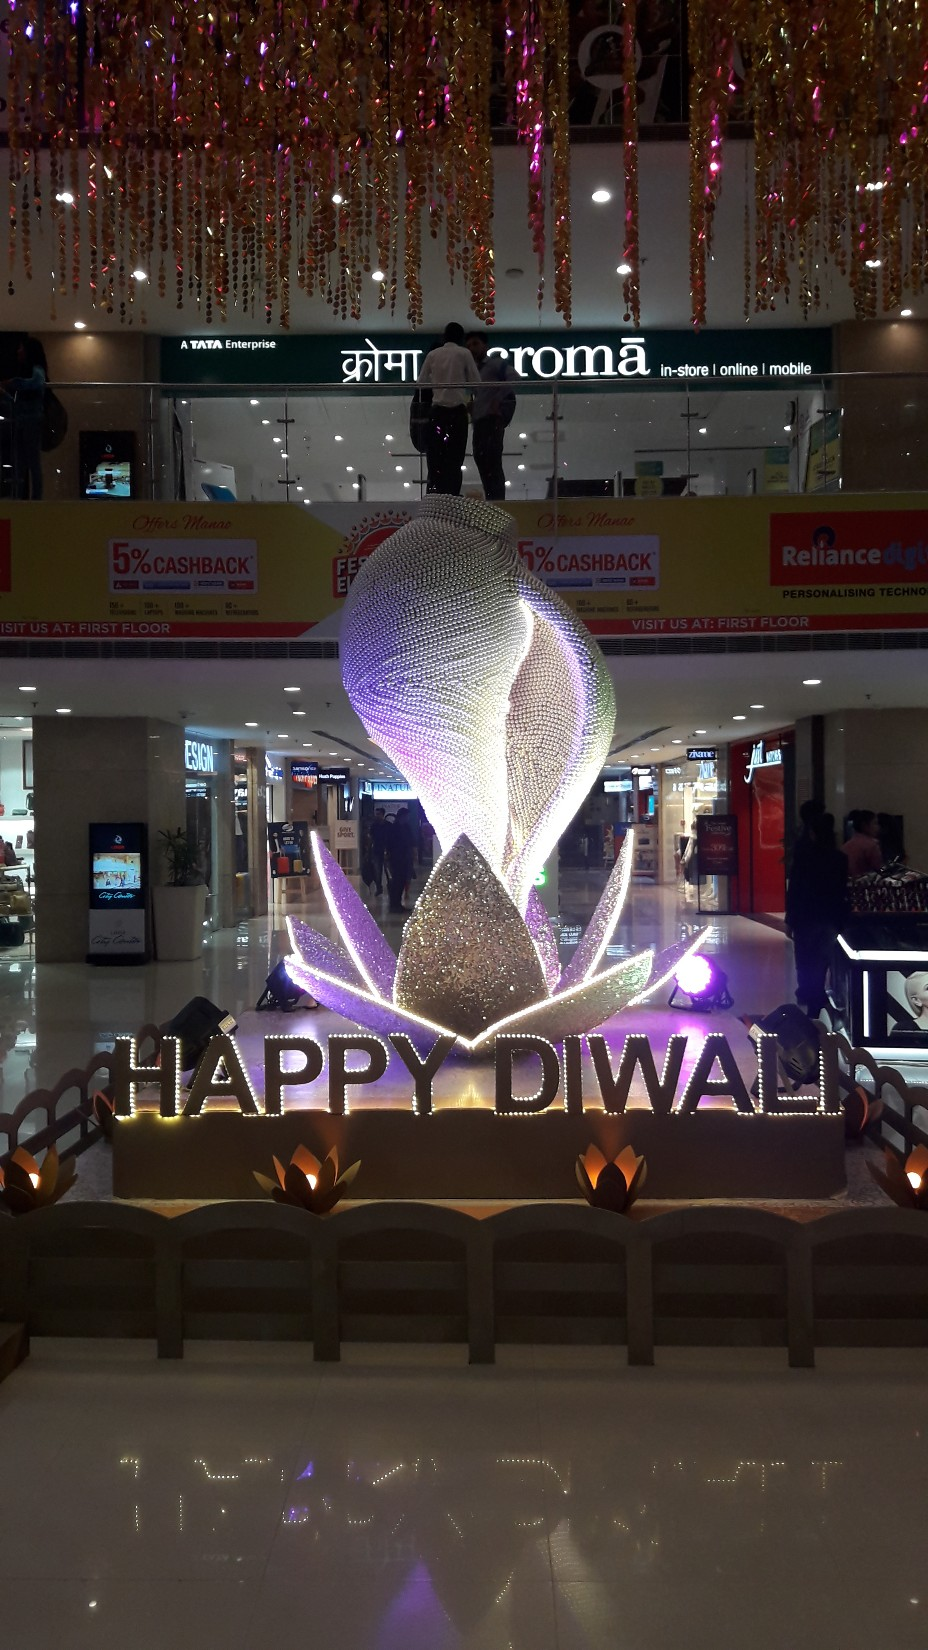 Photograph taken with my mobile phone of a local mall in Noida to capture diwali celebrations and decorations